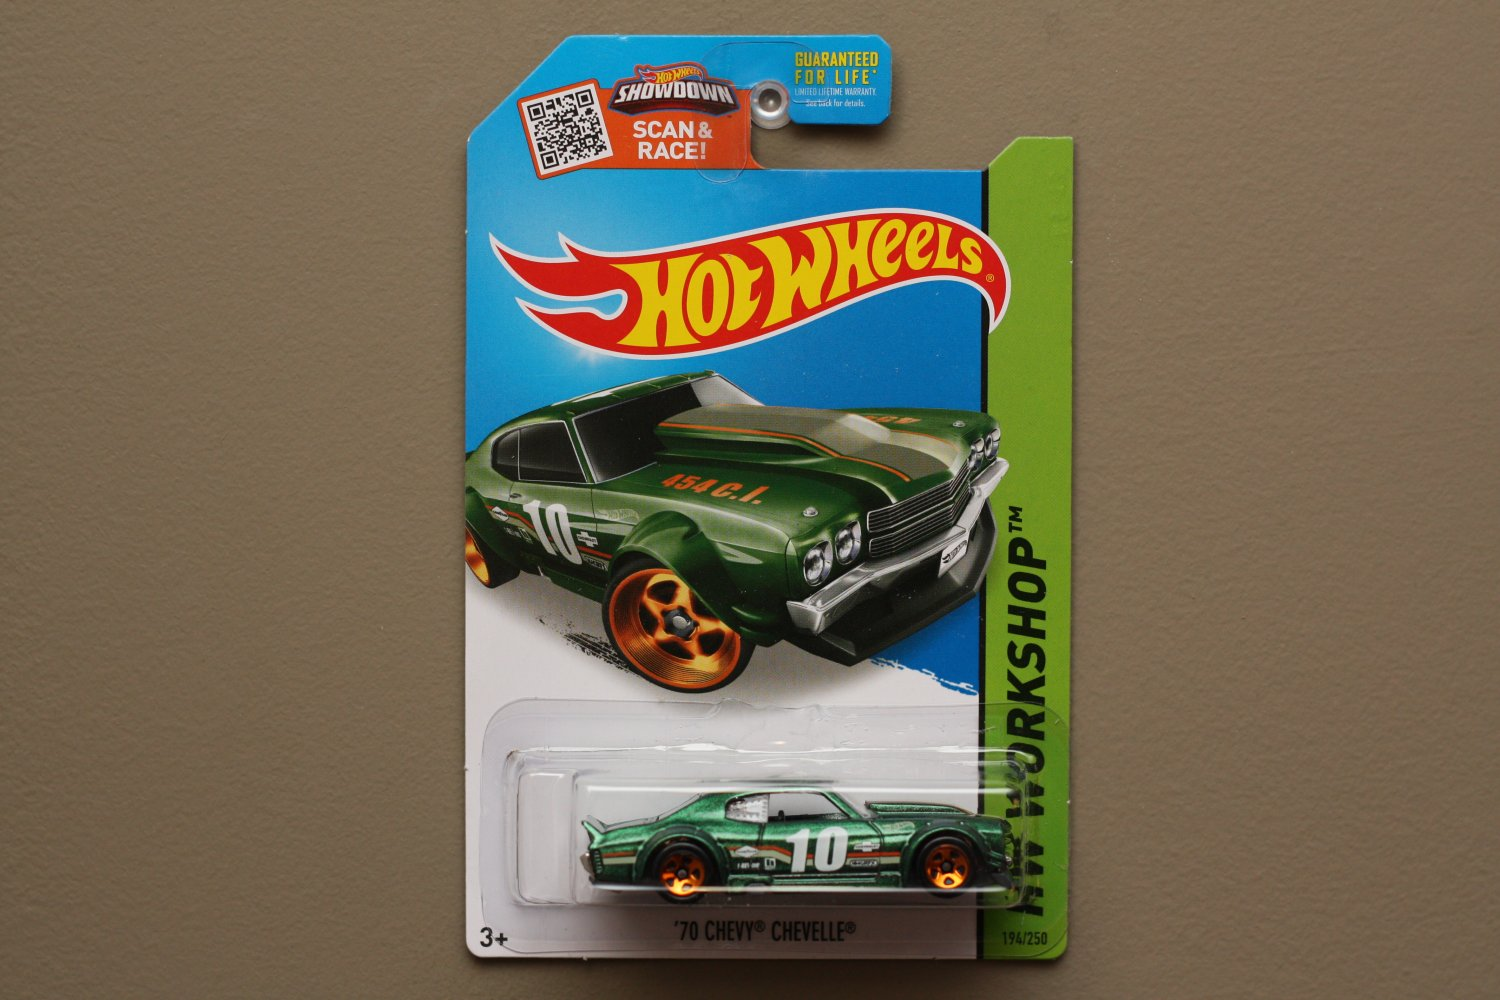 Hot Wheels 2015 HW Workshop '70 Chevy Chevelle (green - Kmart Excl.) (SEE CONDITION)